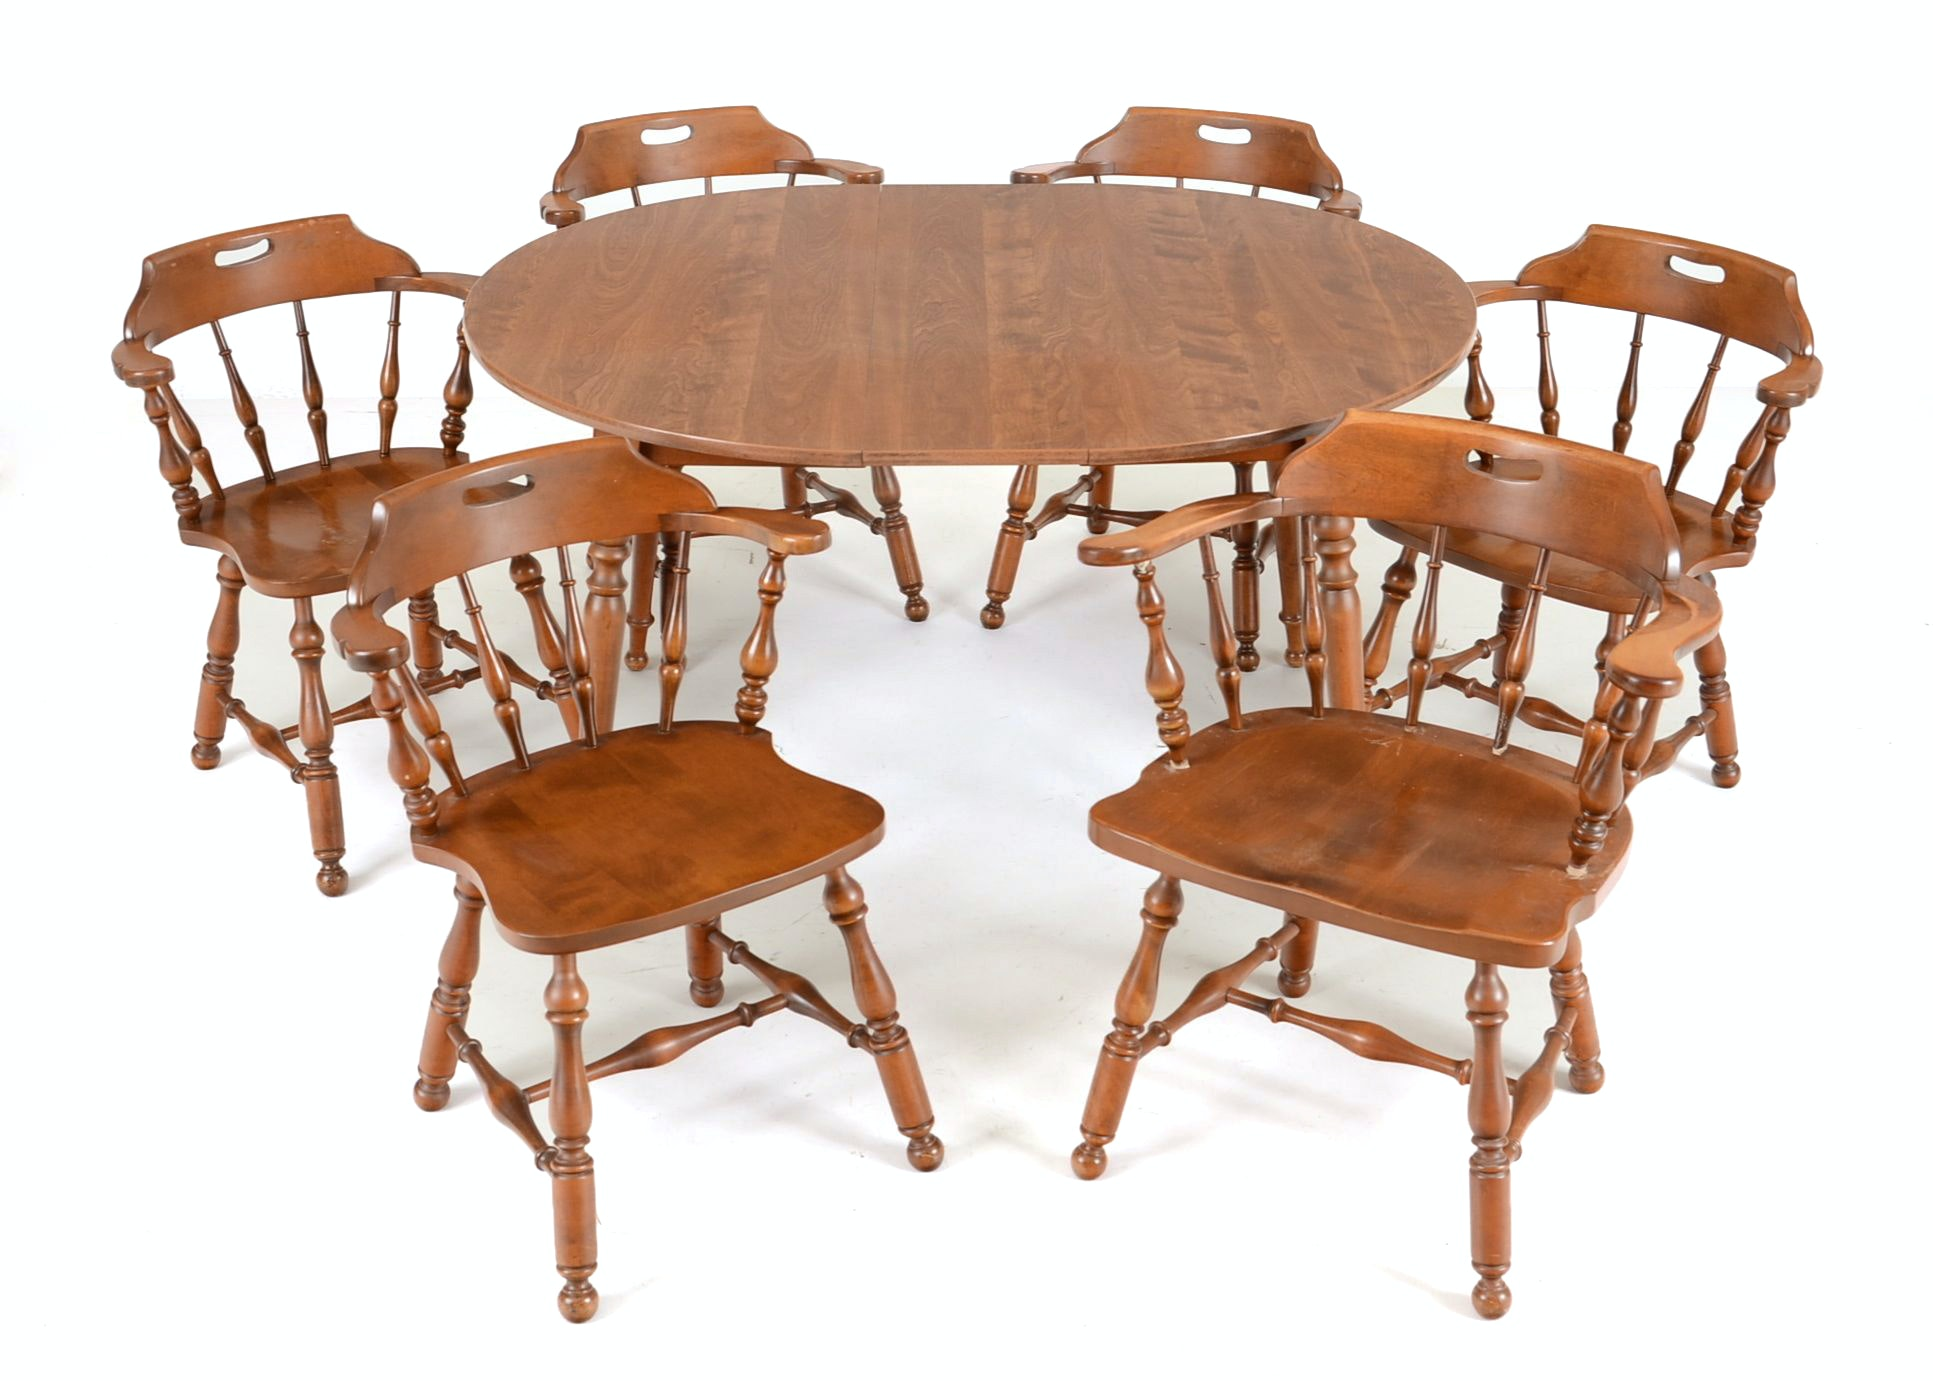 Early American Dining Room Furniture: Early American Style Maple Dining Table And Six Chairs : EBTH